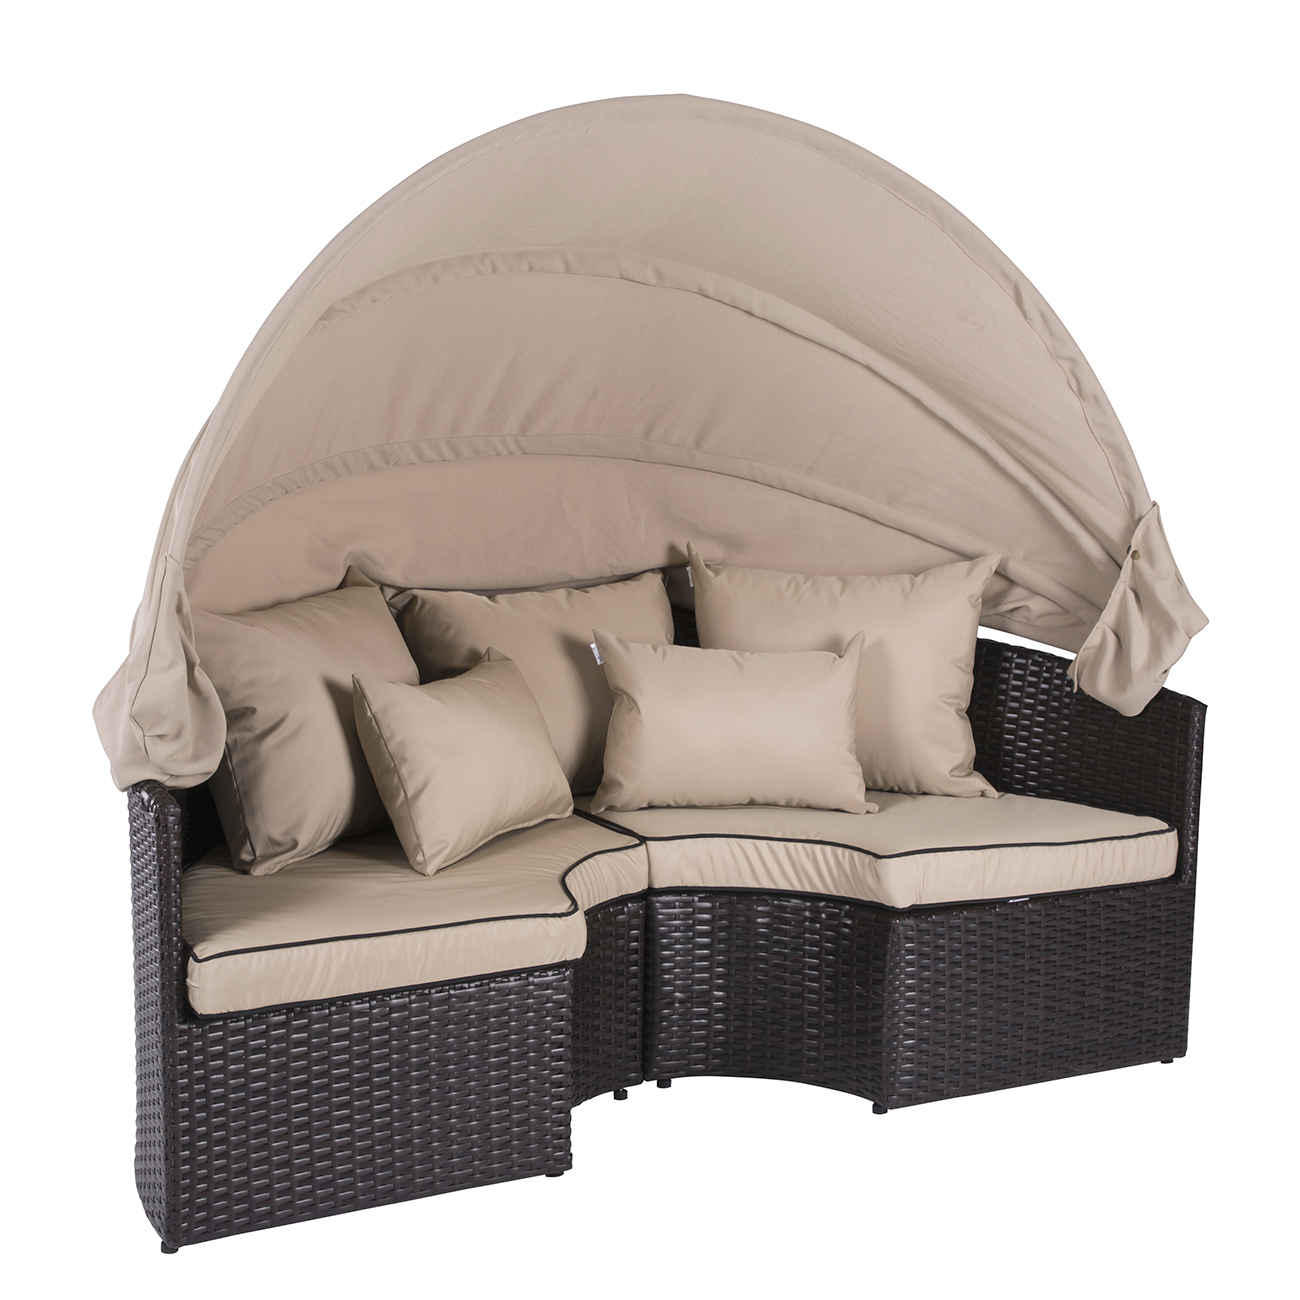 Belleze 5 pc outdoor daybed sectional round retractable canopy rattan wicker furniture sofa w cushion set walmart com